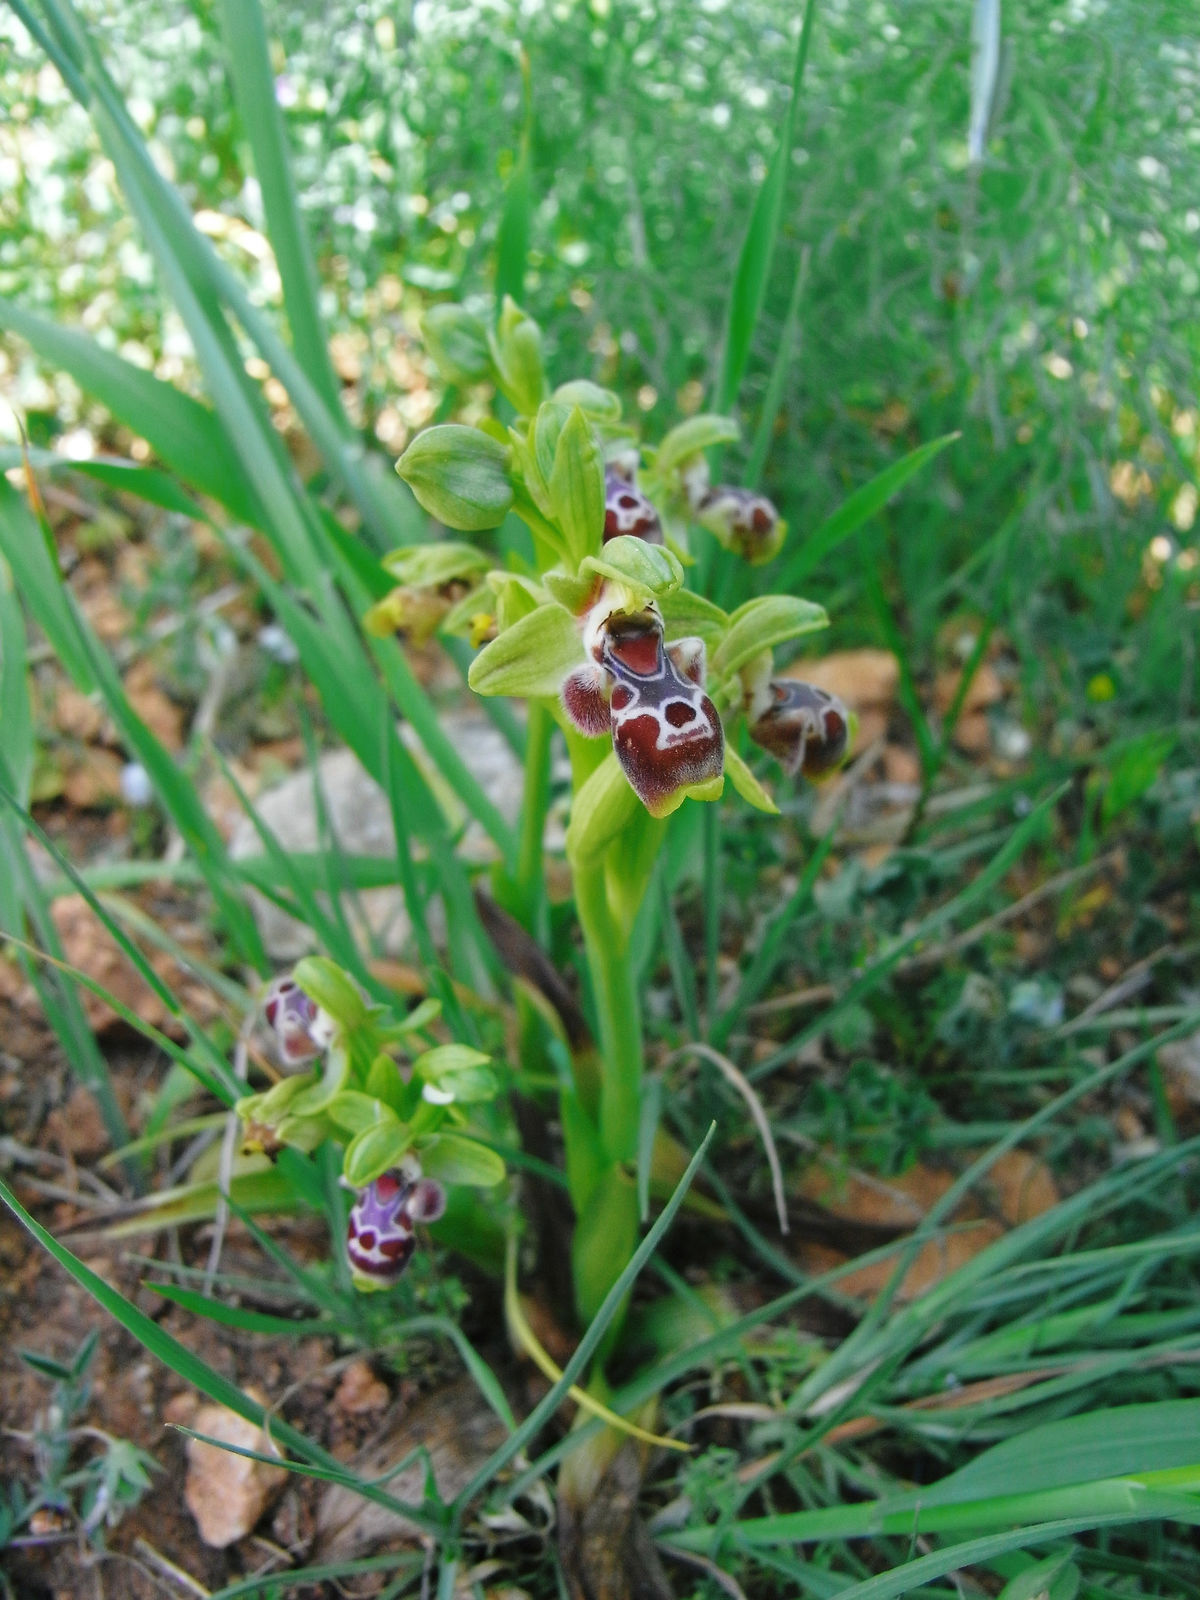 Ophrys tenthredinifera tuber 2 years old